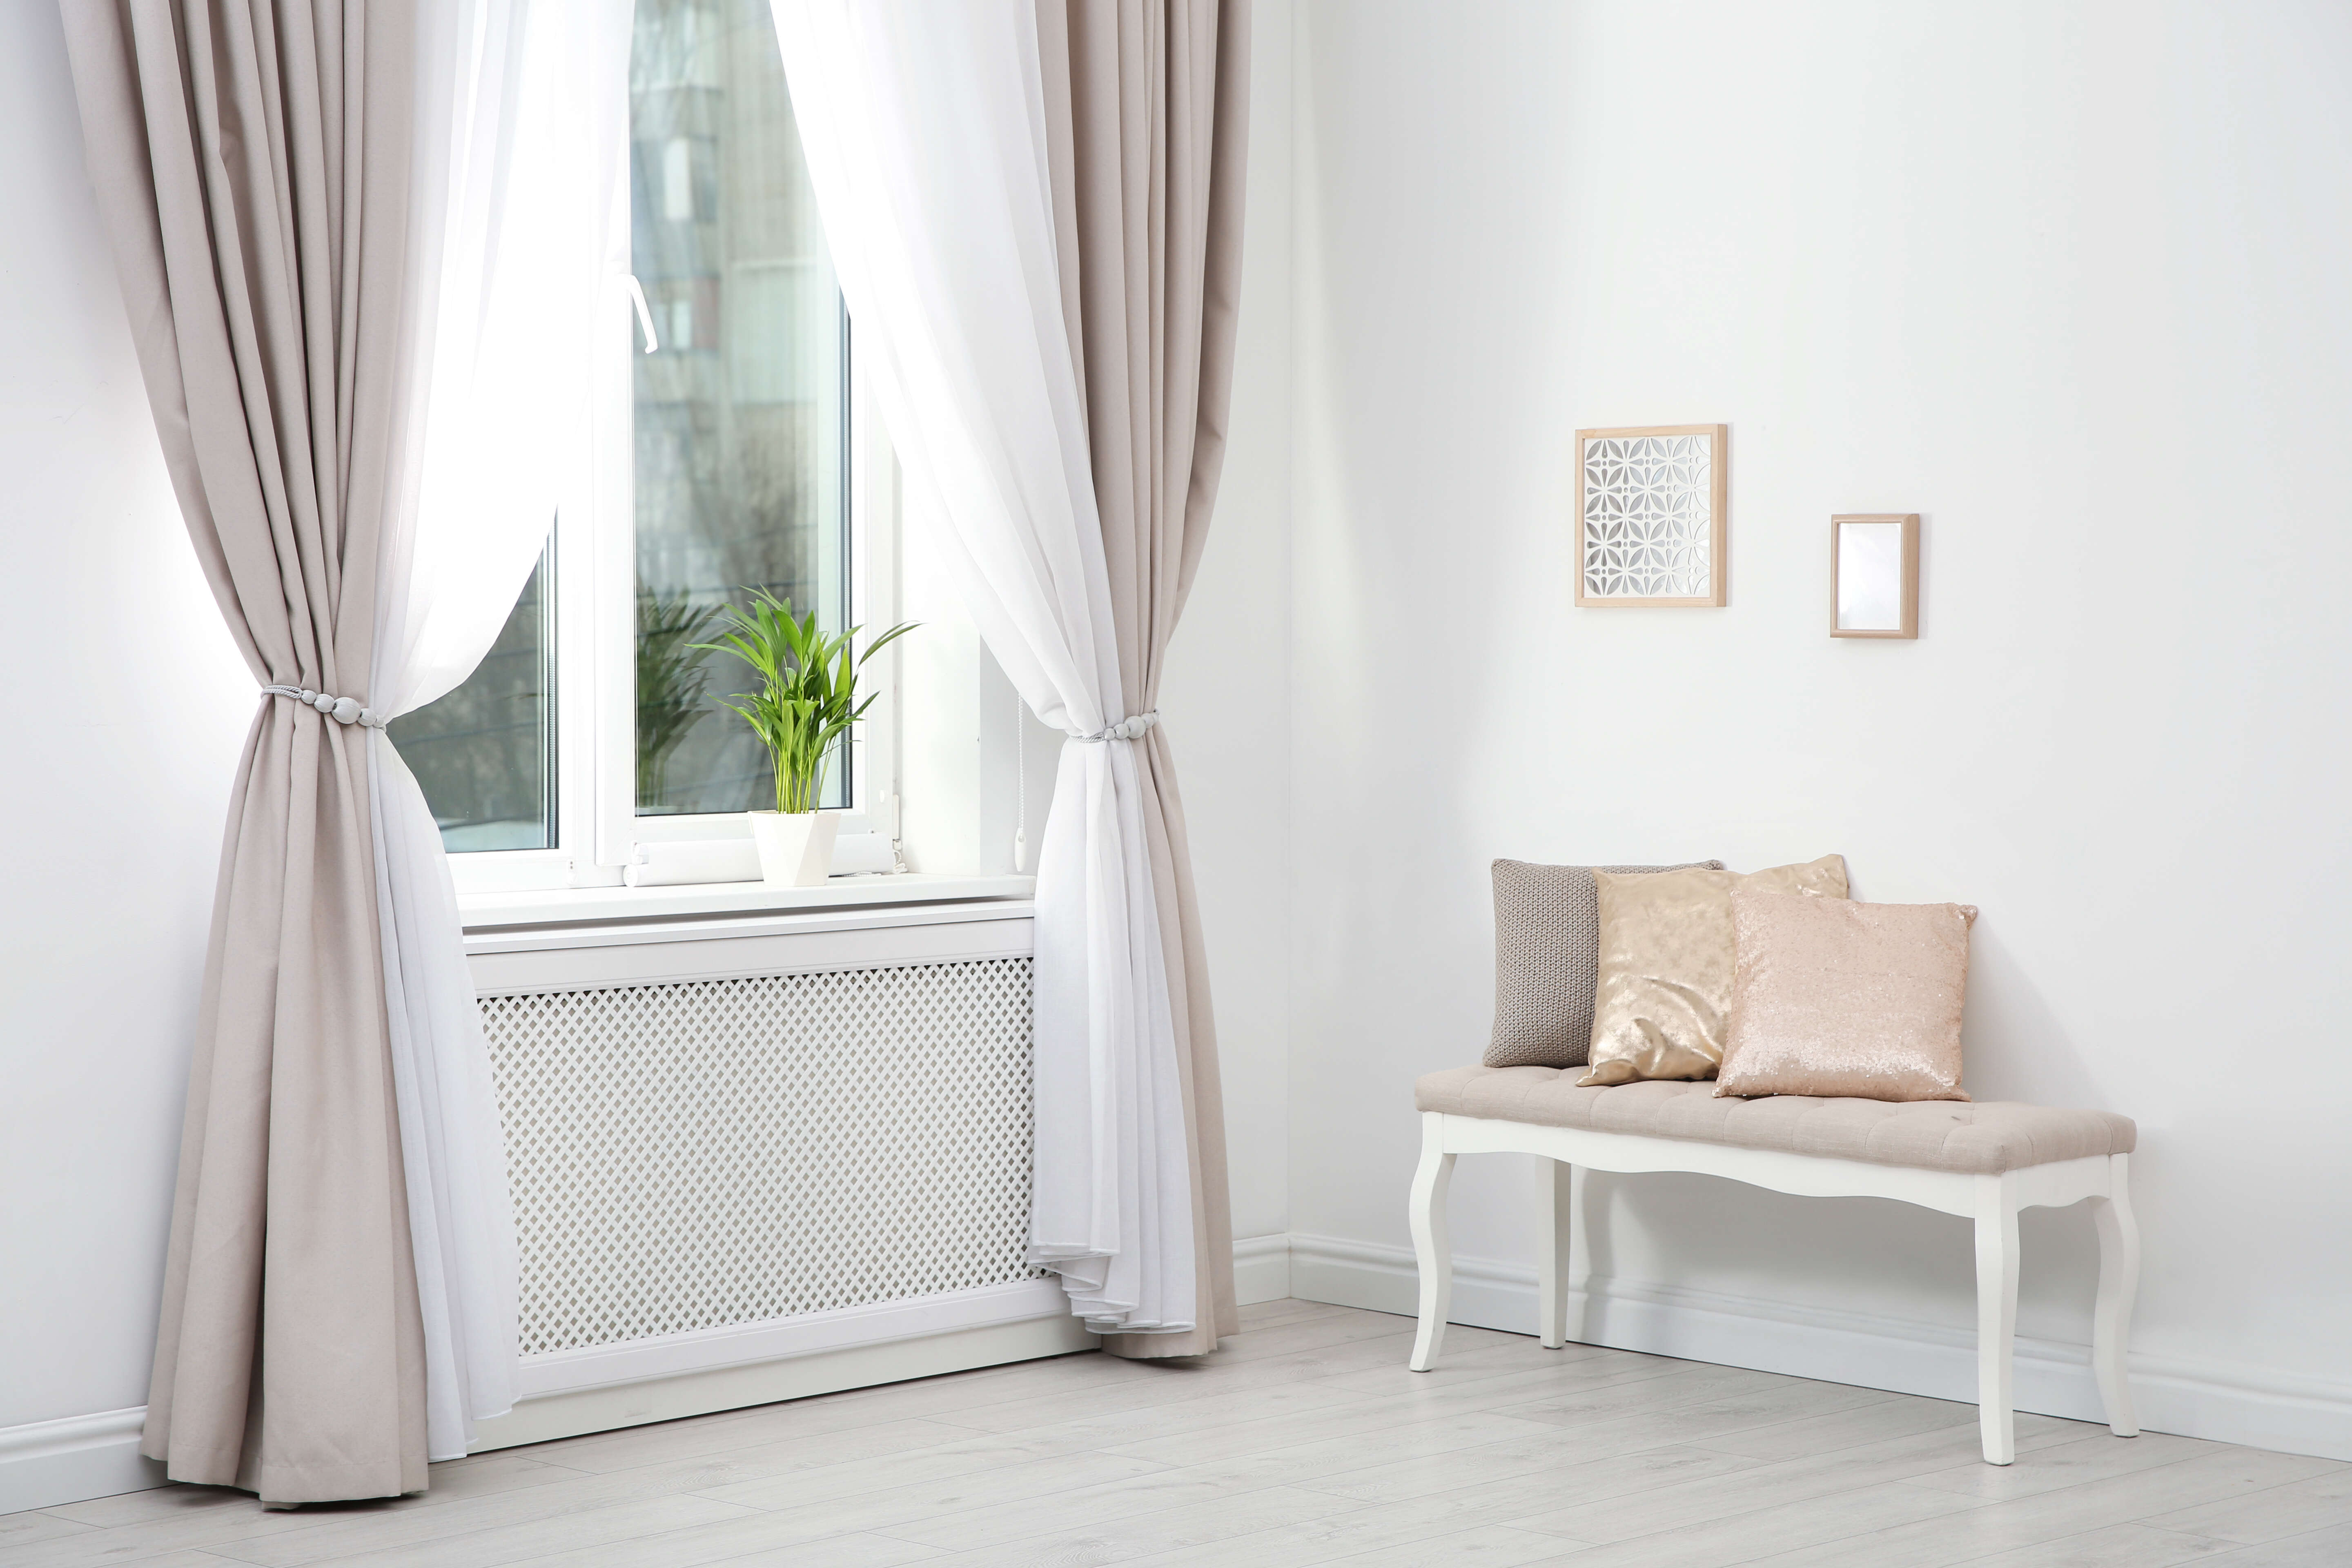 Minimalistic curtains for window